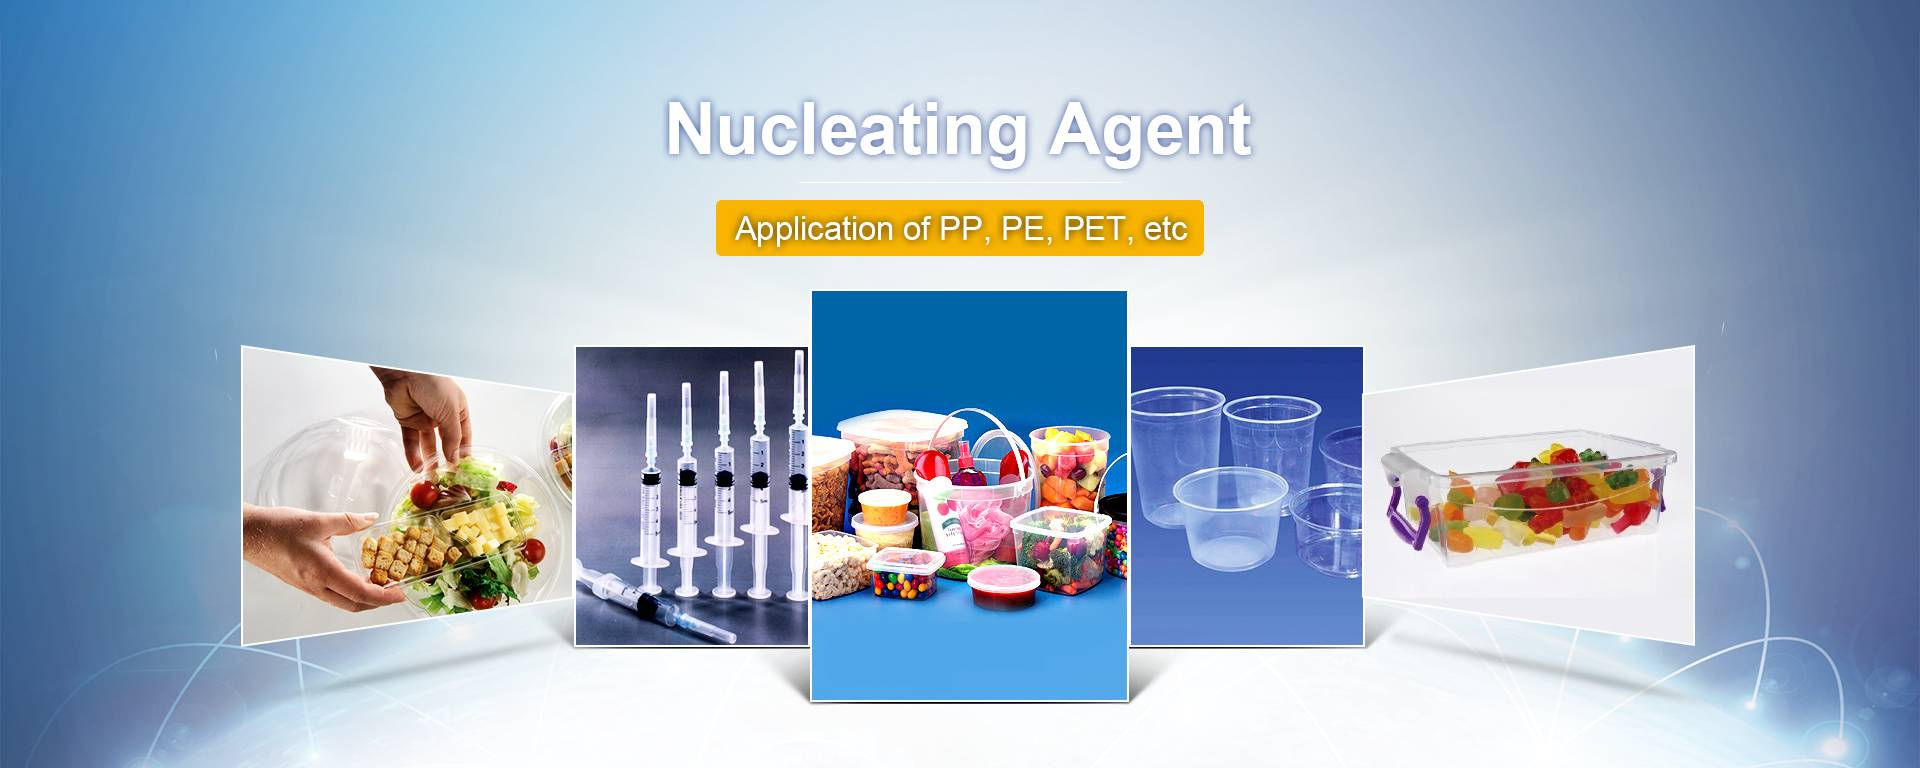 Nucleating Agent-2